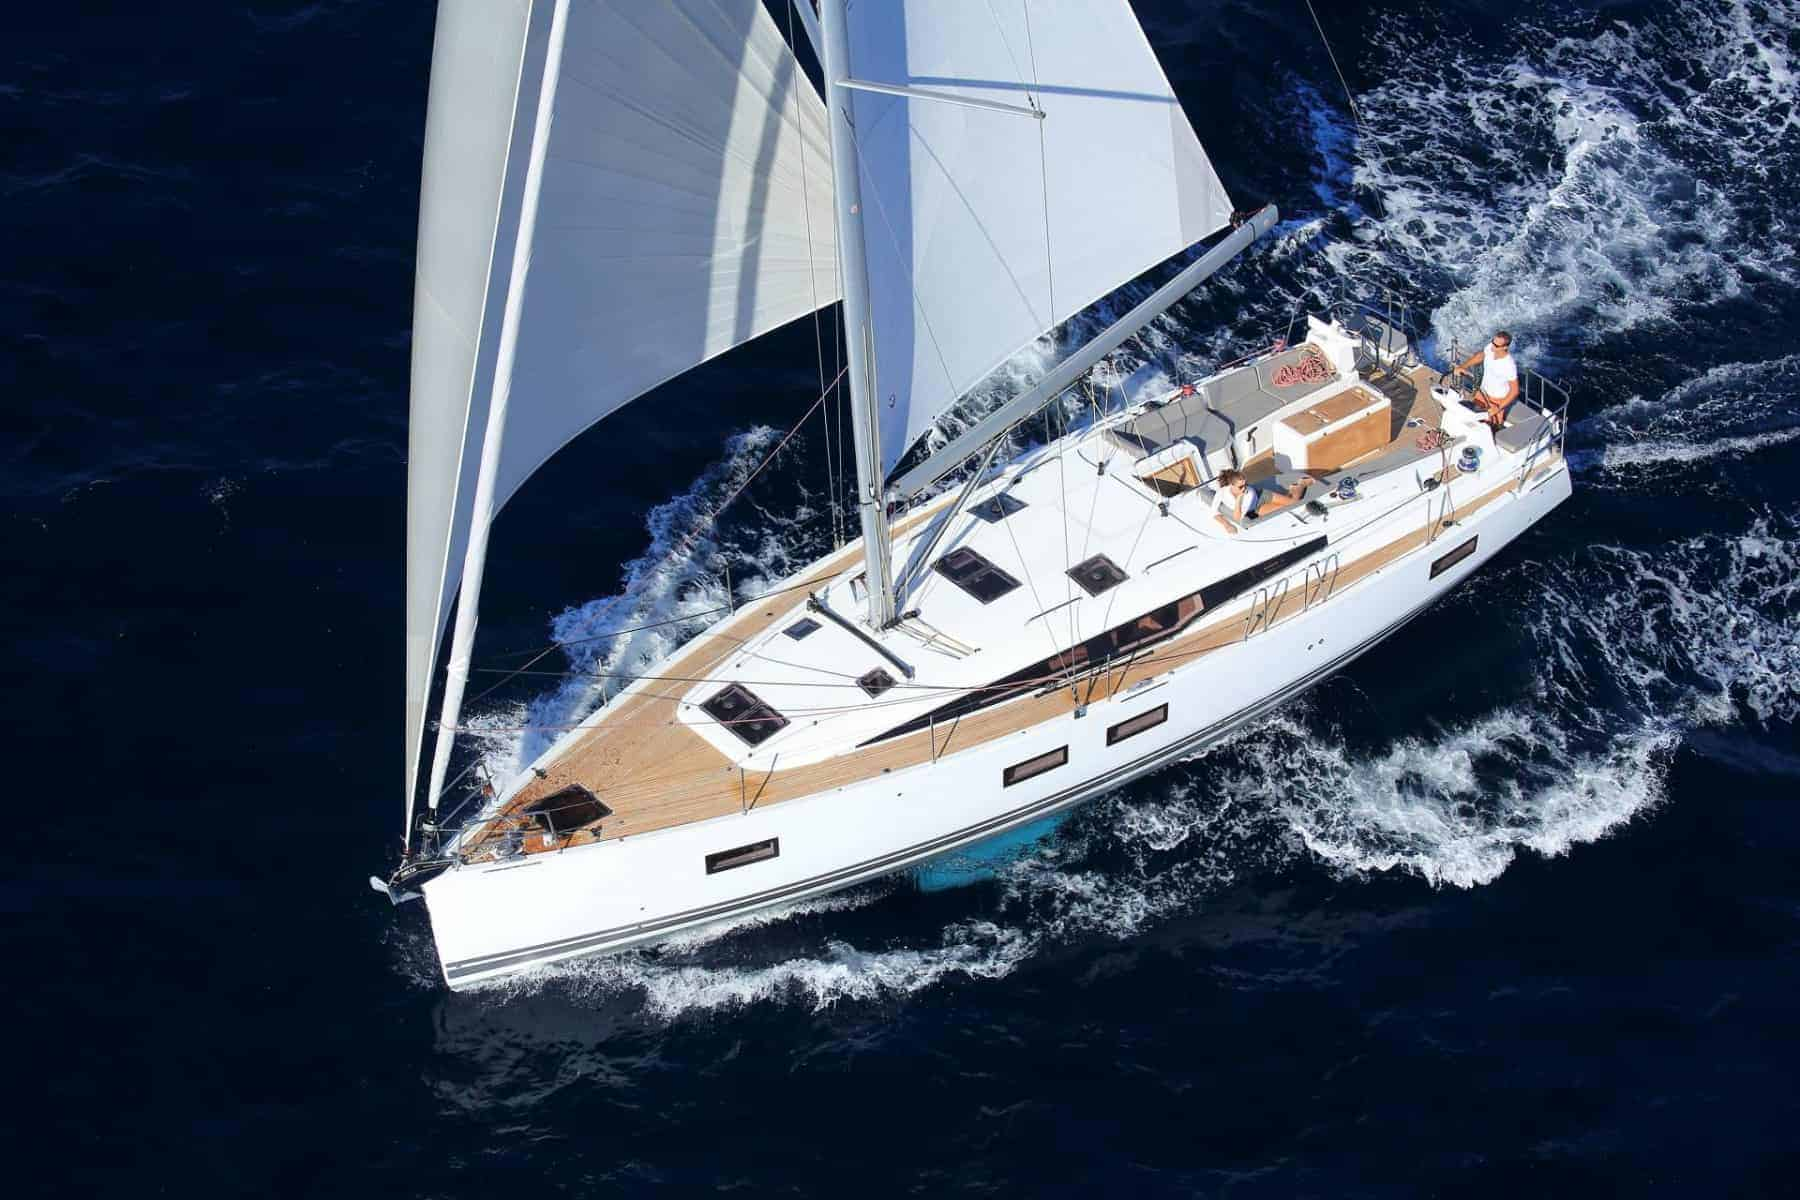 Jeanneau-51-exterior-11-charter-ownership-yacht